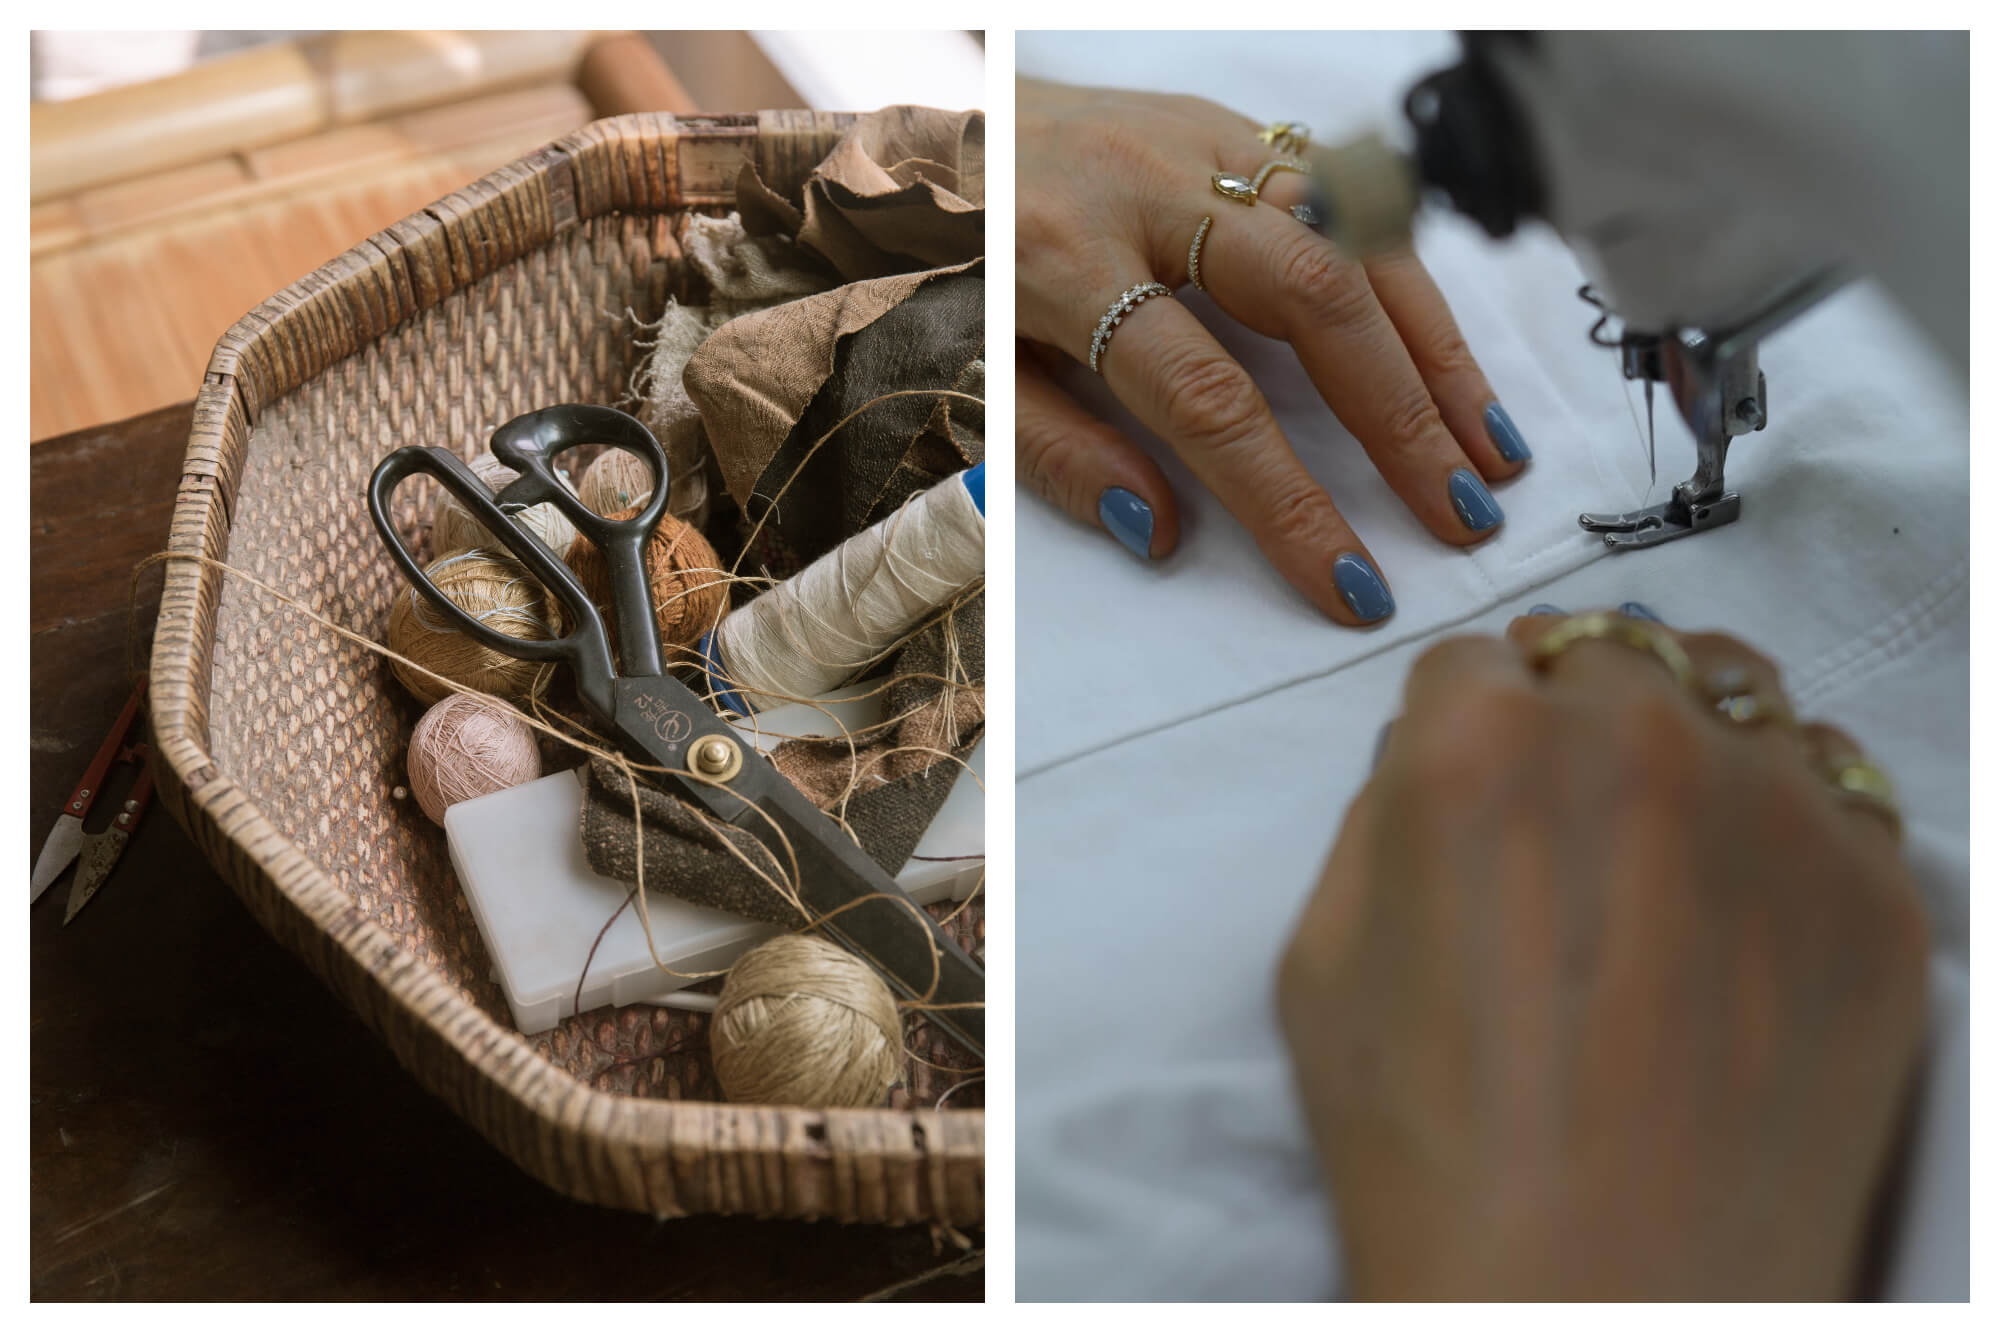 Left: a basket full of beige, orange and pink thread, a pair of black scissors, and scraps of brown fabrick.   Right: a woman's hands with blue painted fingernails sews a white cloth at a sewing machine.